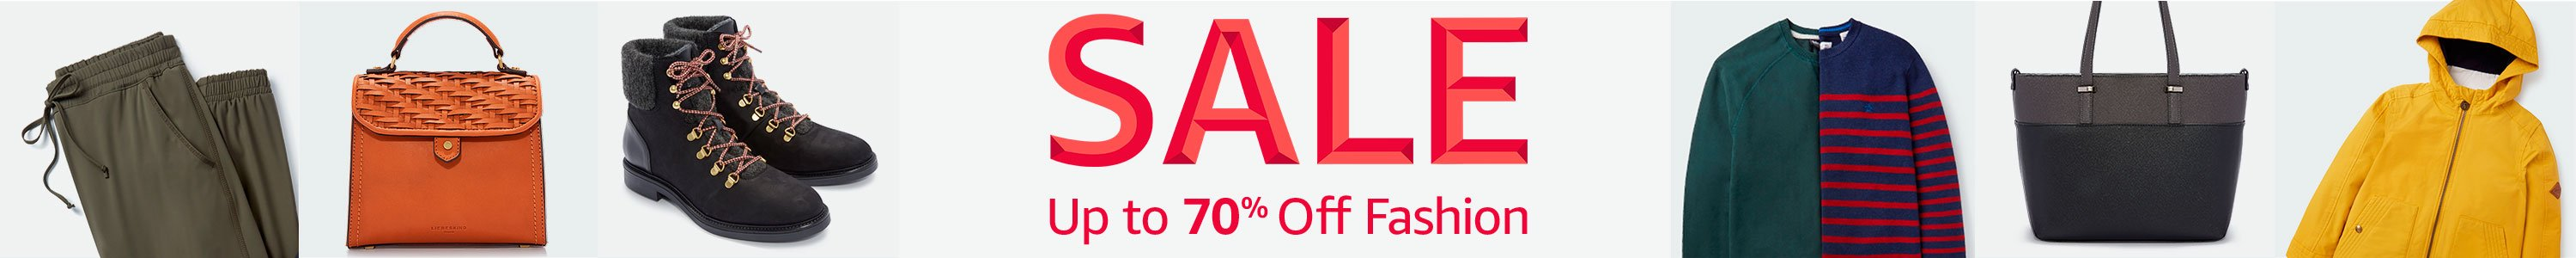 Fashion Sale: up to 70% off